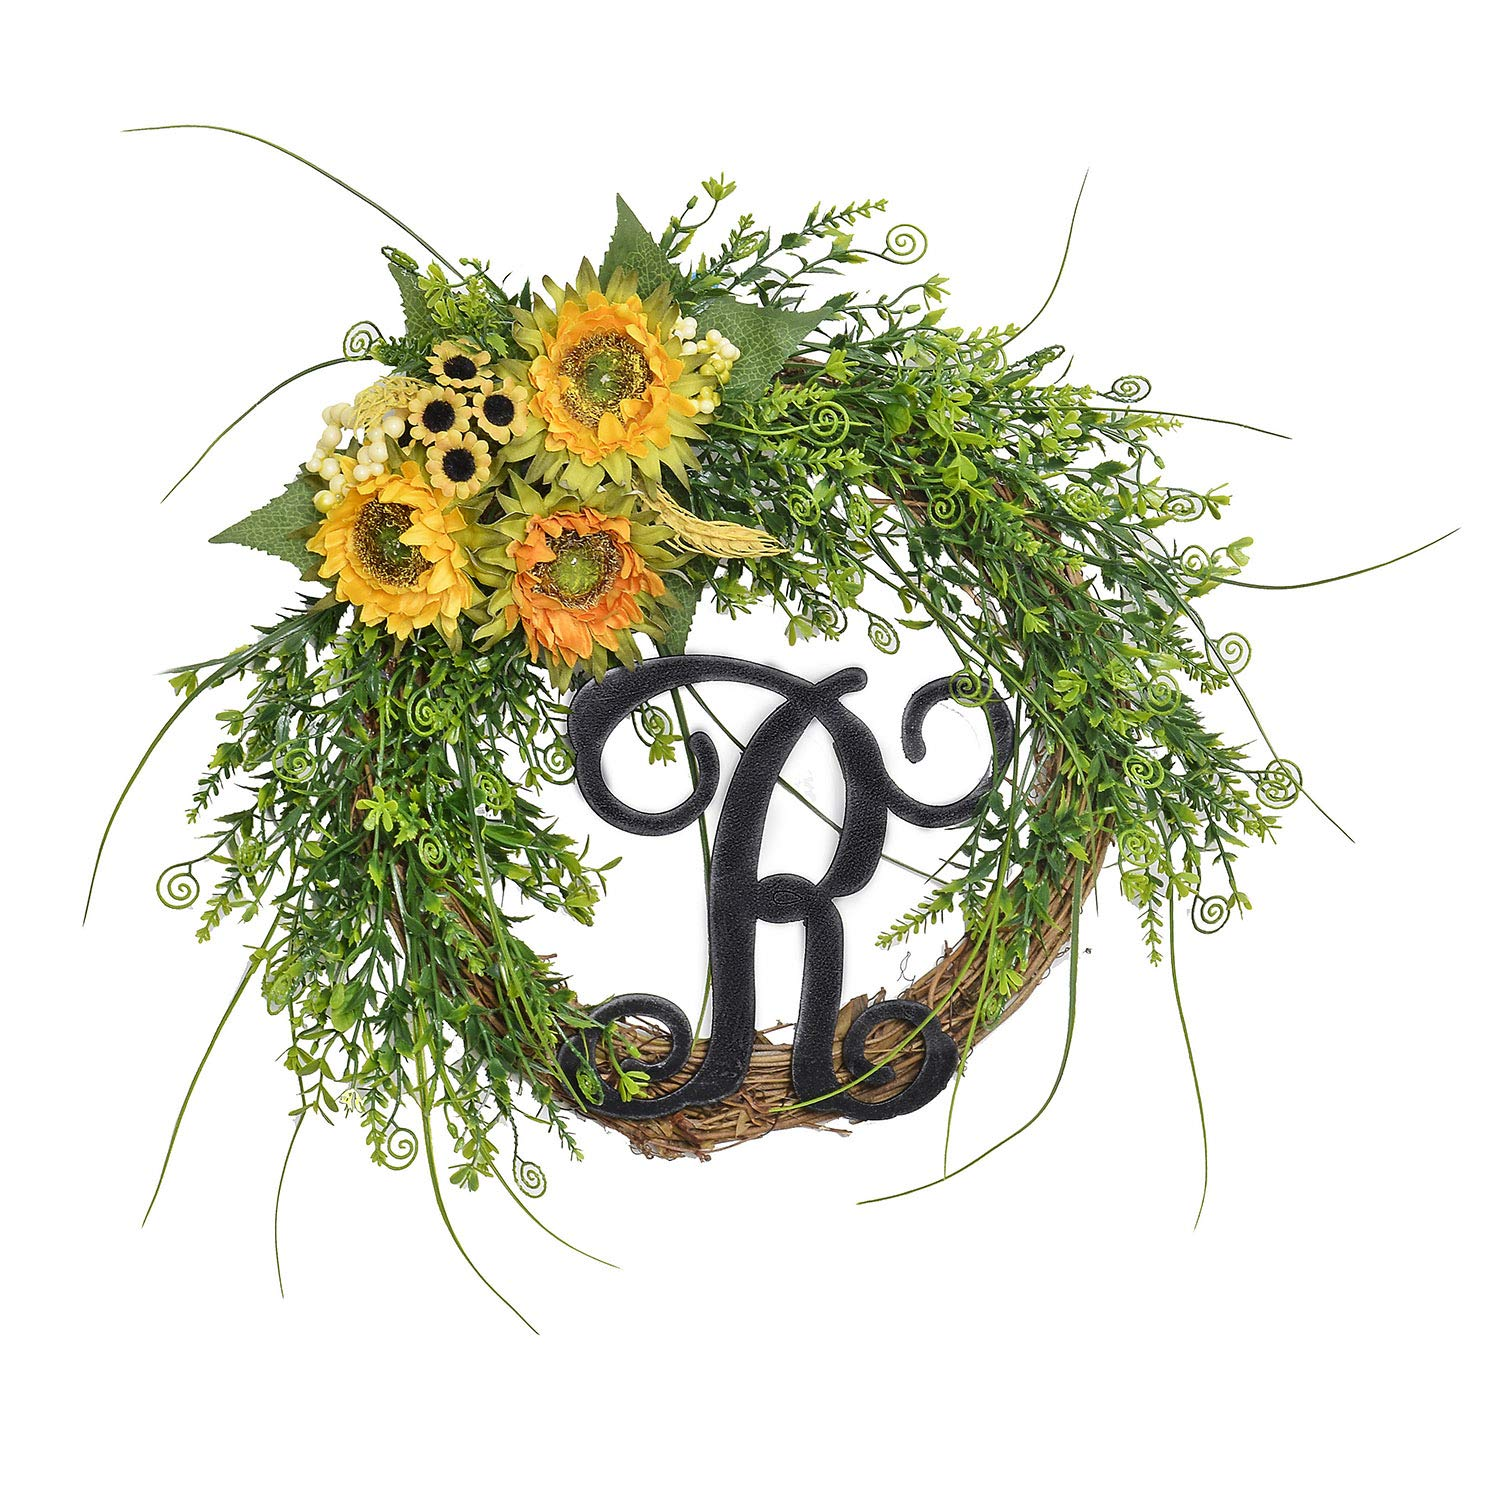 FAVOWREATH 2018Vitality Series FAVO-W108 Handmade 14 inch Green Grass,R Letter,Sunflowers Grapevine Wreath for Fall Festival Front Door/Wall/Fireplace Every Day Nearly Natural Home Hanger Decor by FAVOWREATH